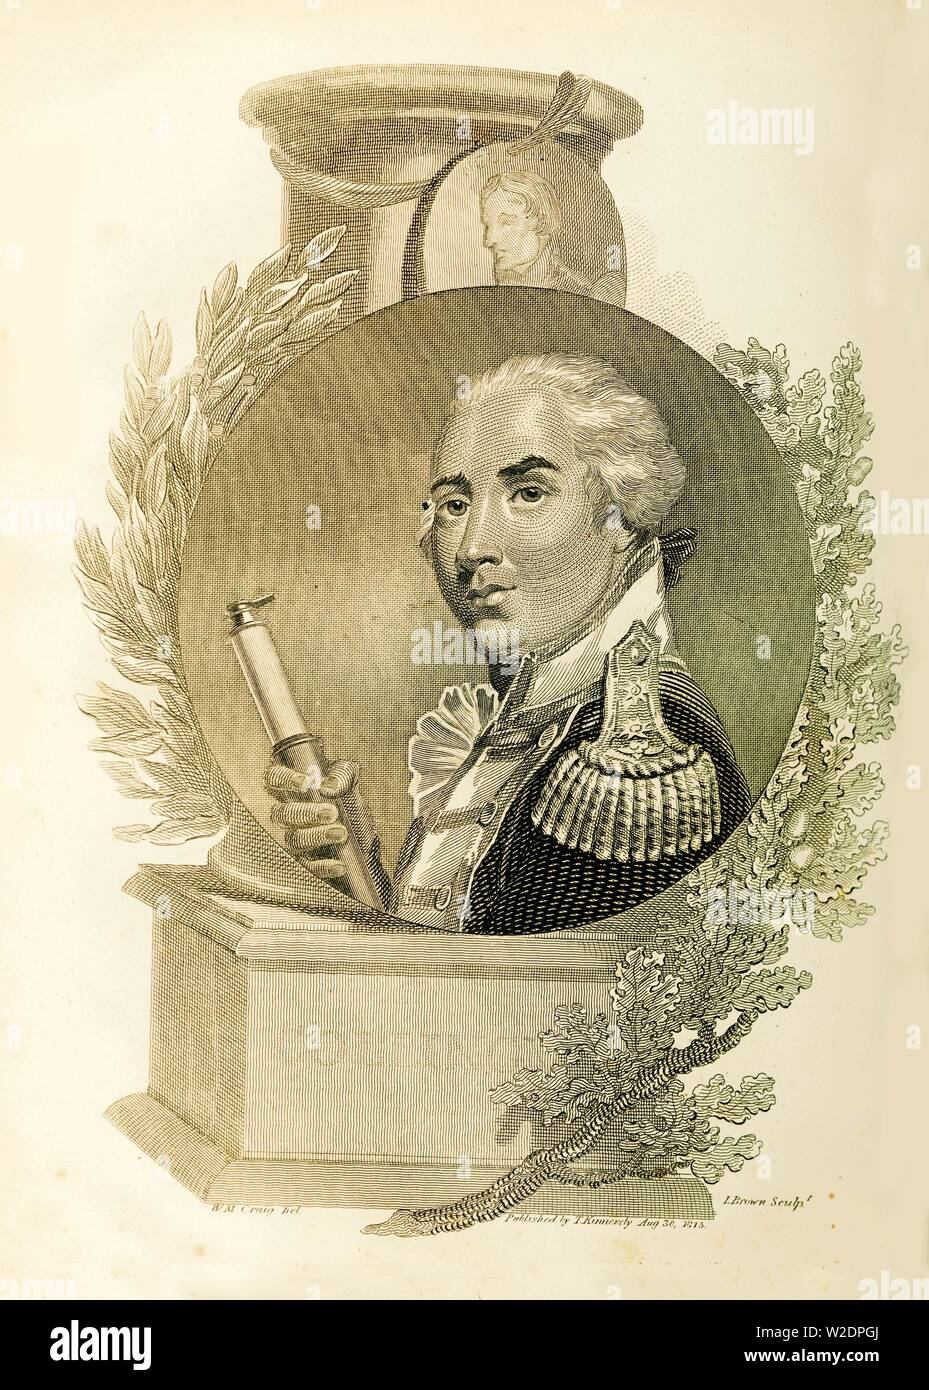 'Admiral Lord Collingwood', (1748-1810), 1816. Creator: Unknown. Stock Photo